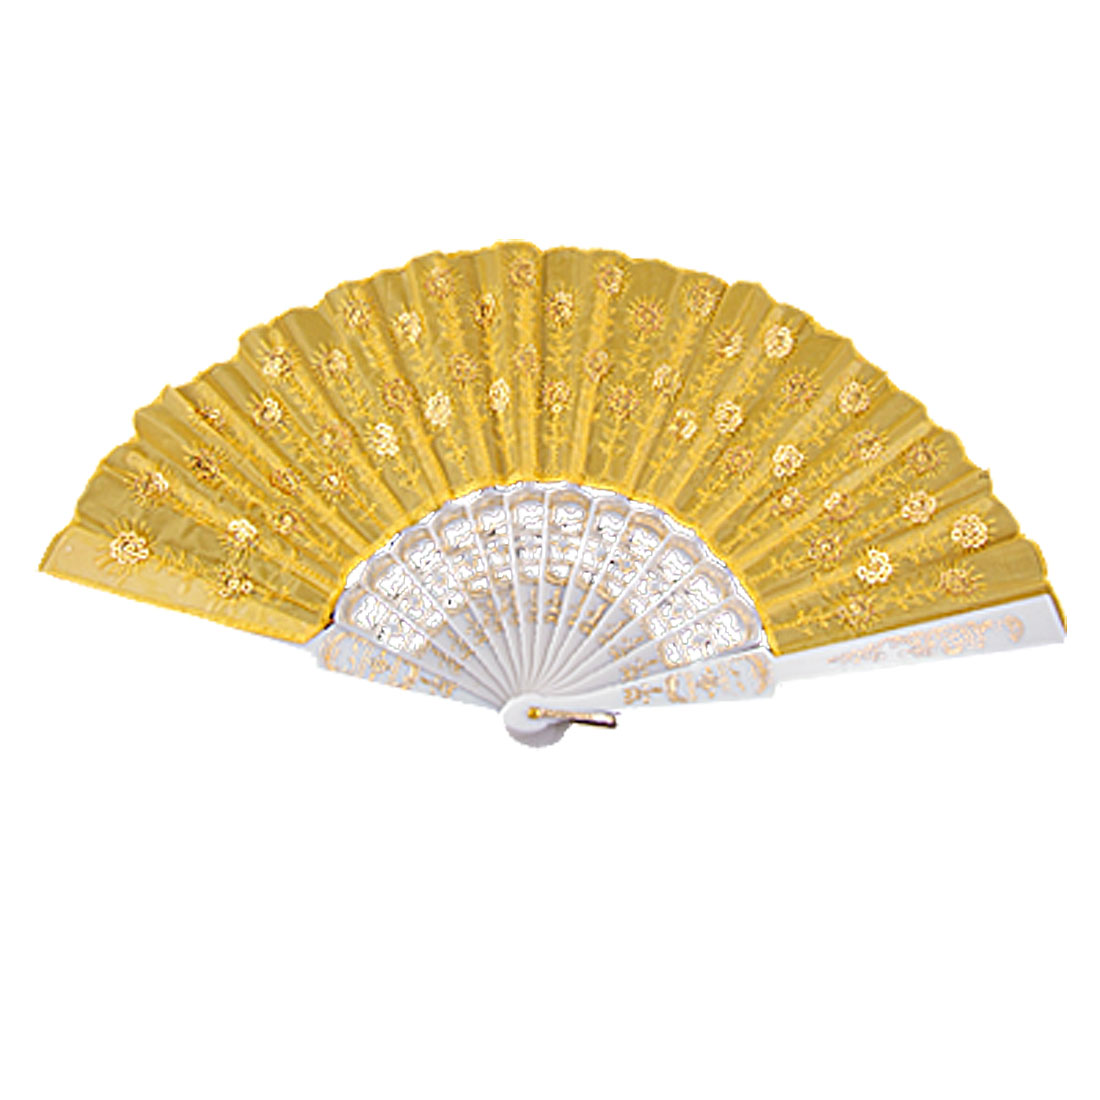 Sequin Accent Orange Embroidered Flower White Ribs Cloth Folding Hand Fan